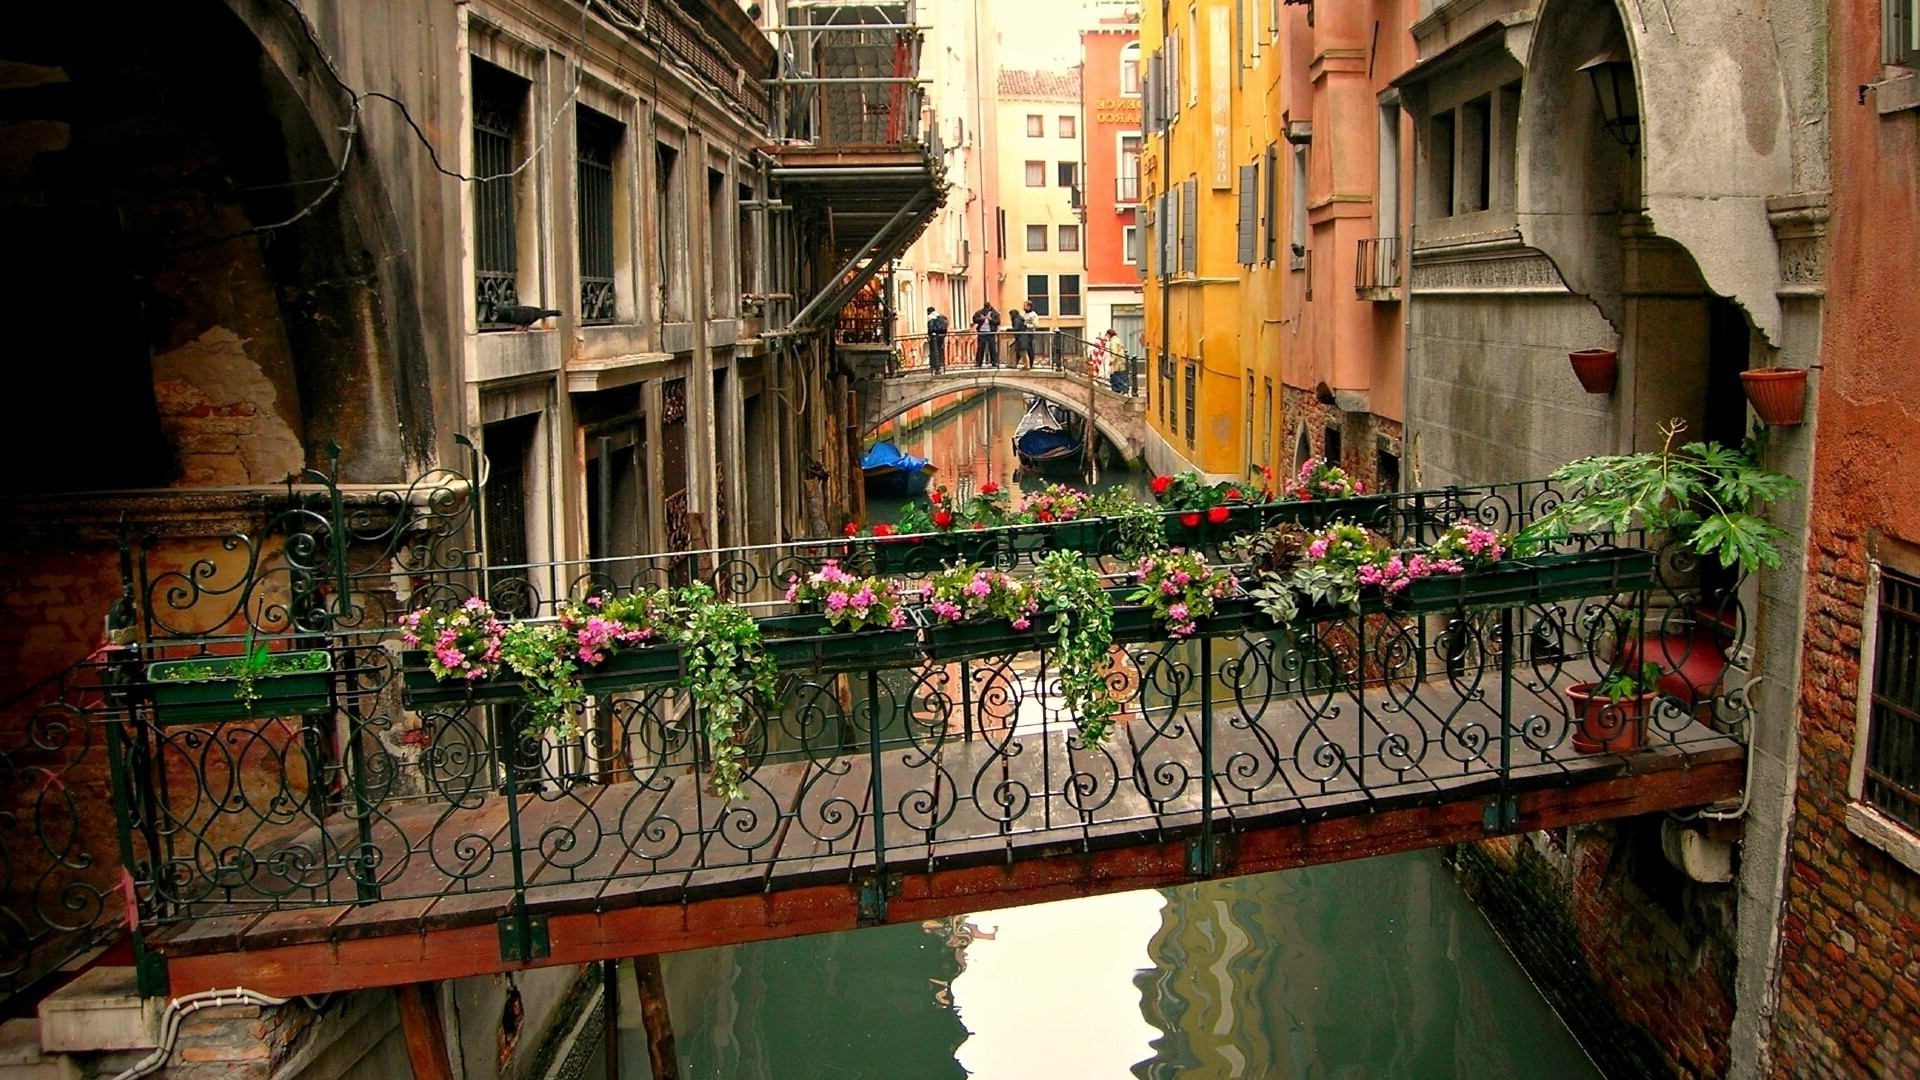 cityscape Architecture Town Building Venice Italy Water 1920x1080